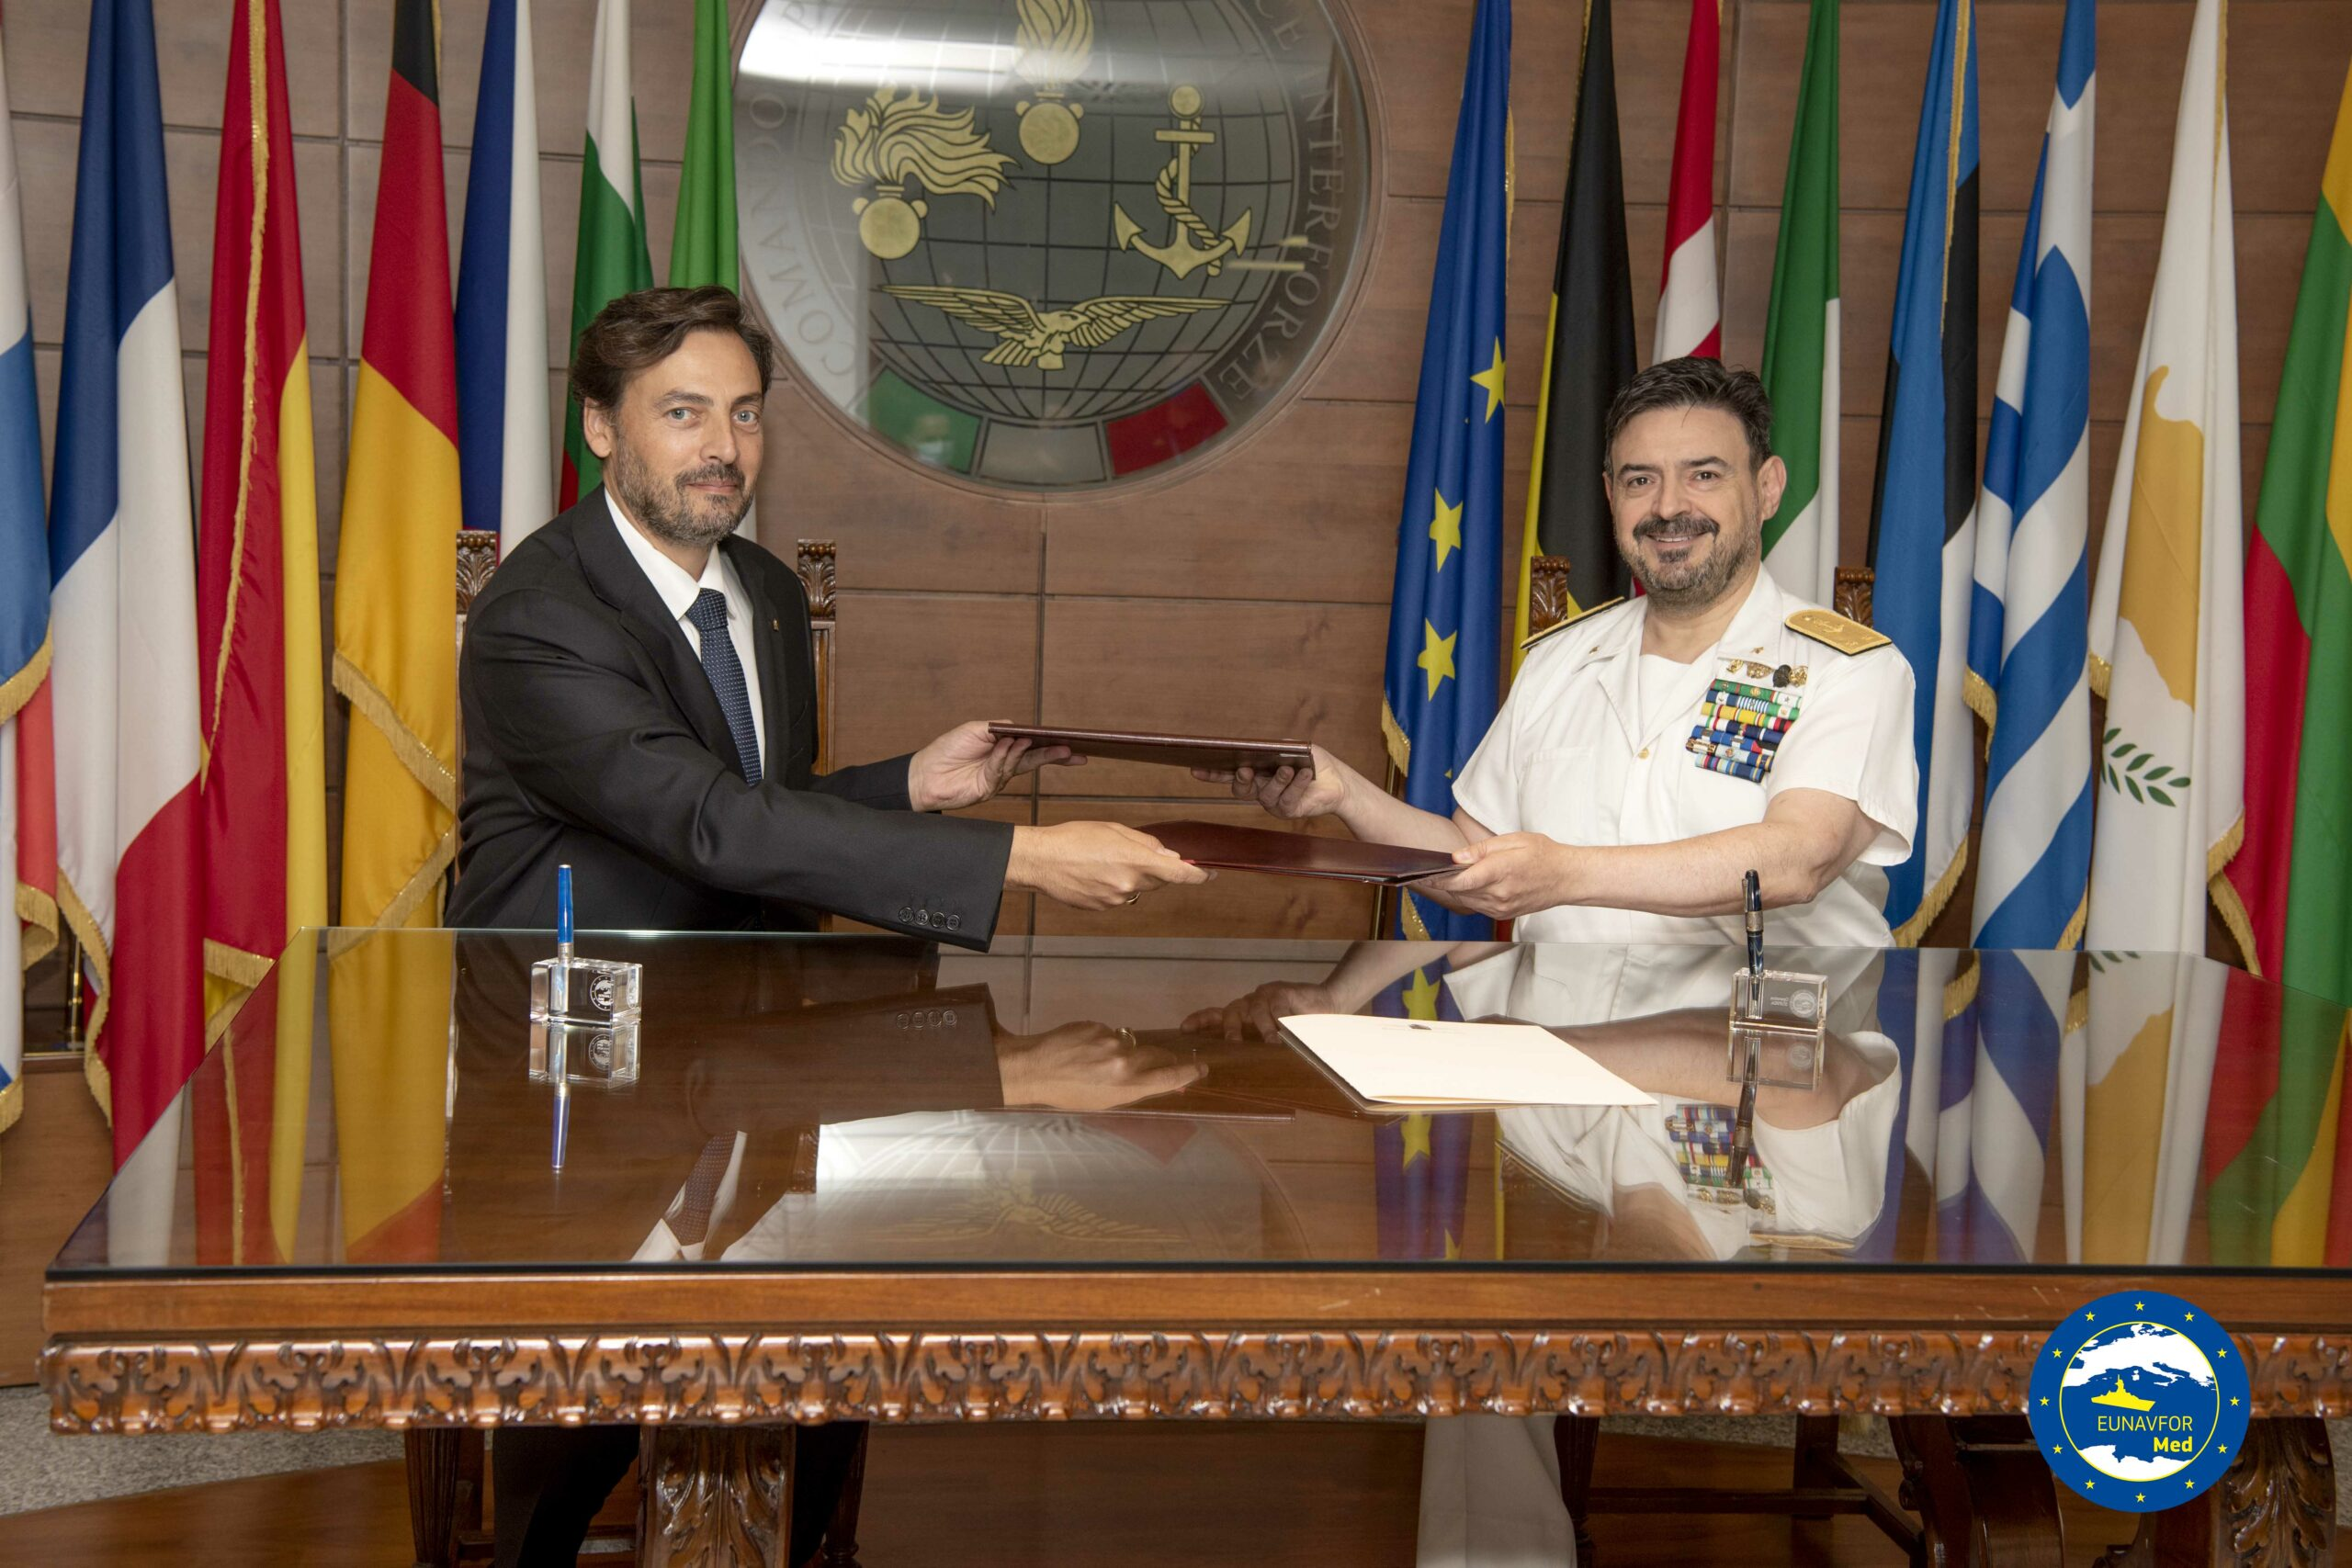 Eunavfor Med Irini and Accademia Internazionale Mauriziana sign a working arrangement with the aim to cooperate in the field of training